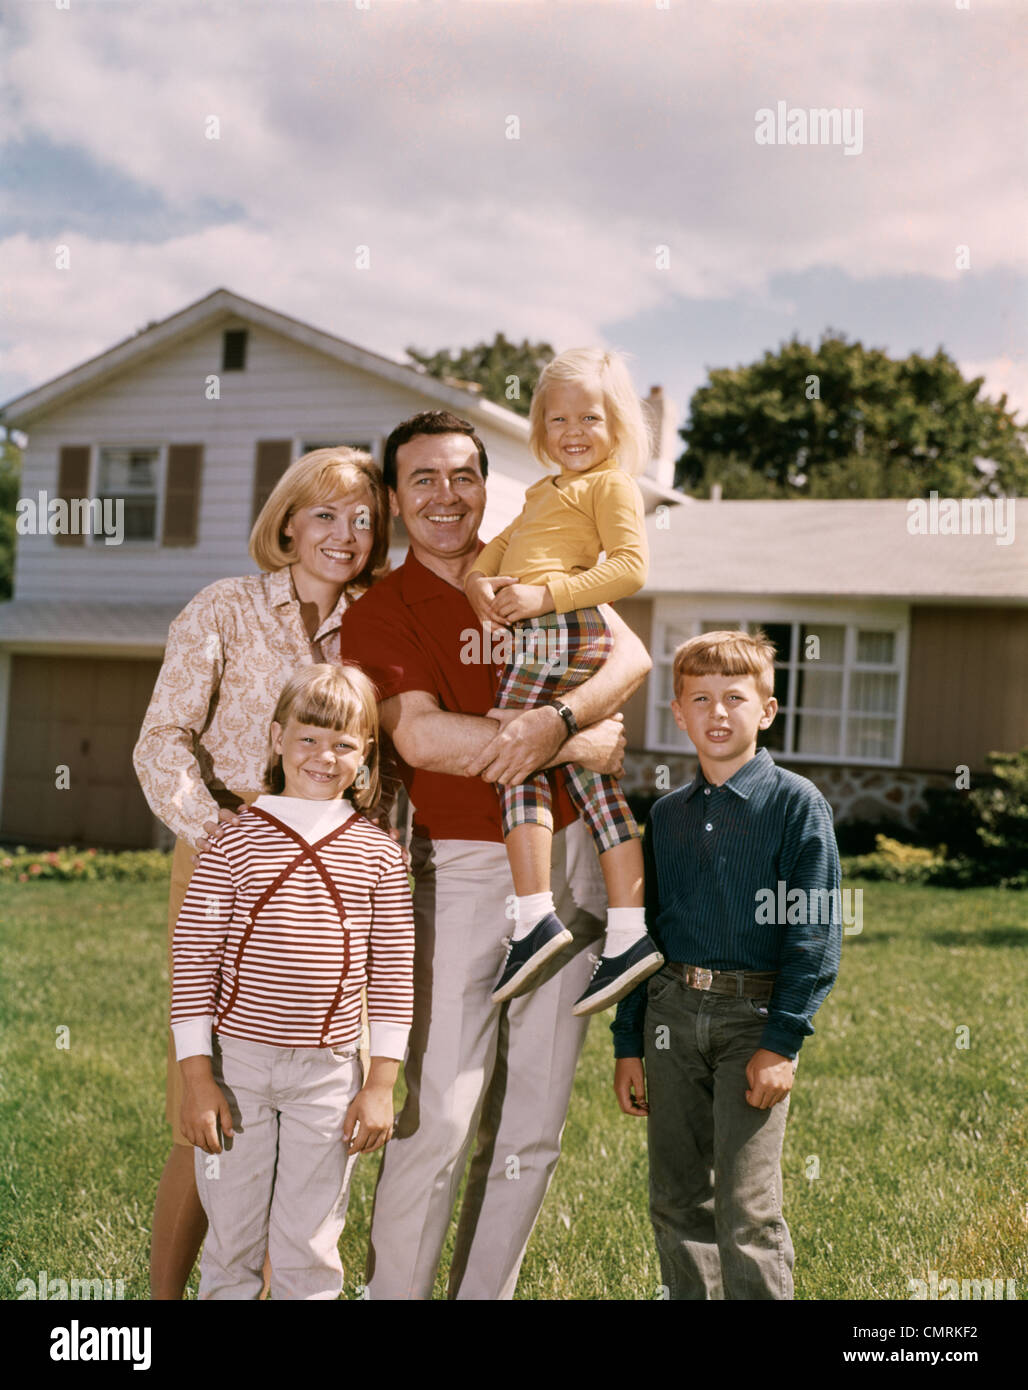 1960s FAMILY PORTRAIT STANDING IN FRONT OF A SUBURBAN SPLIT LEVEL HOUSE FATHER MOTHER TWO DAUGHTERS SON SMILING - Stock Image